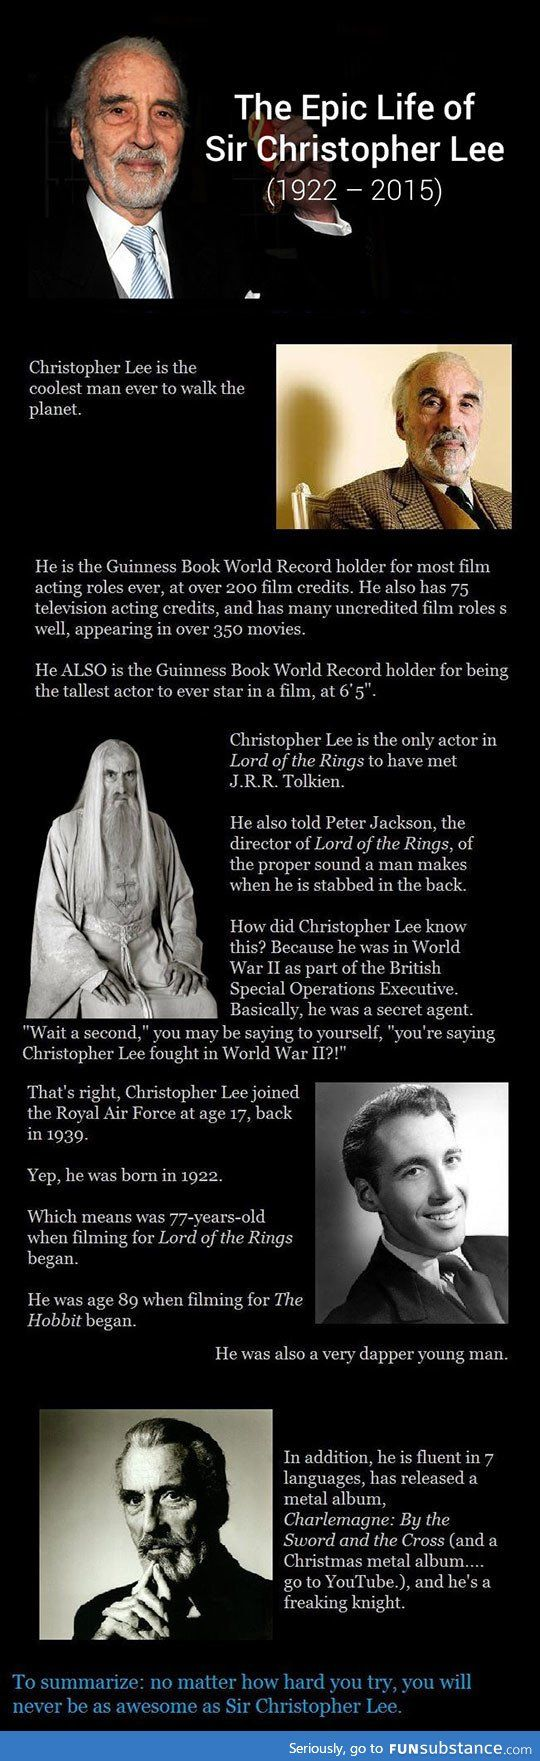 The awesome Christopher Lee, R.I.P. you wonderful man.